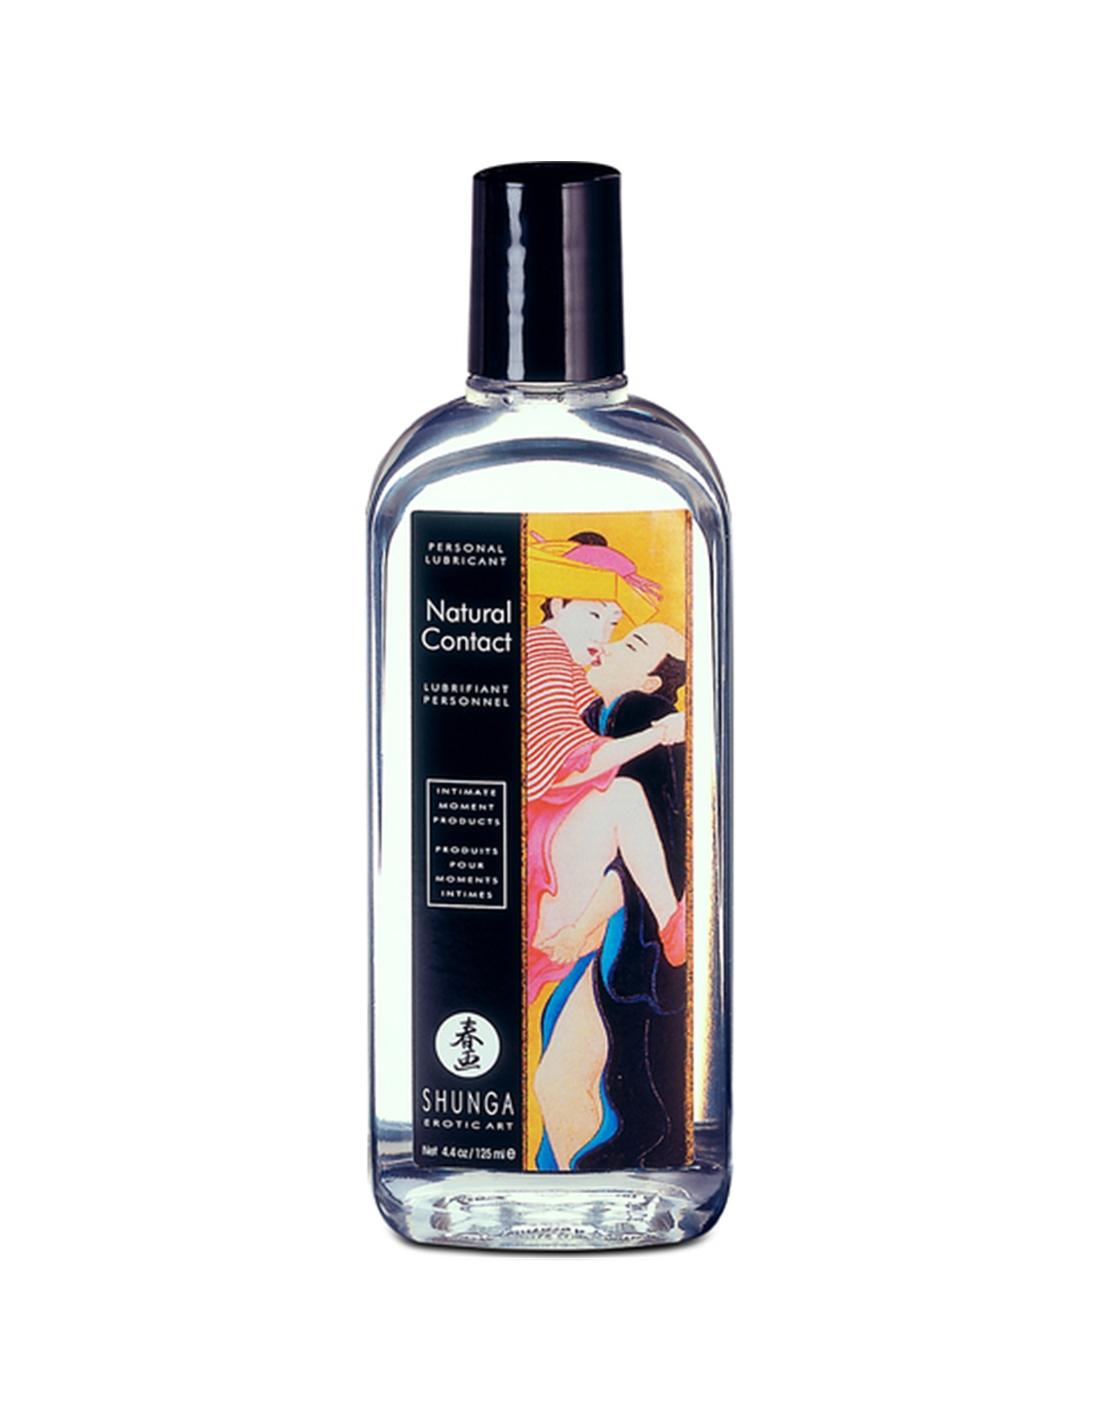 Lubrificante Shunga Natural Contact - 125ml - PR2010300073